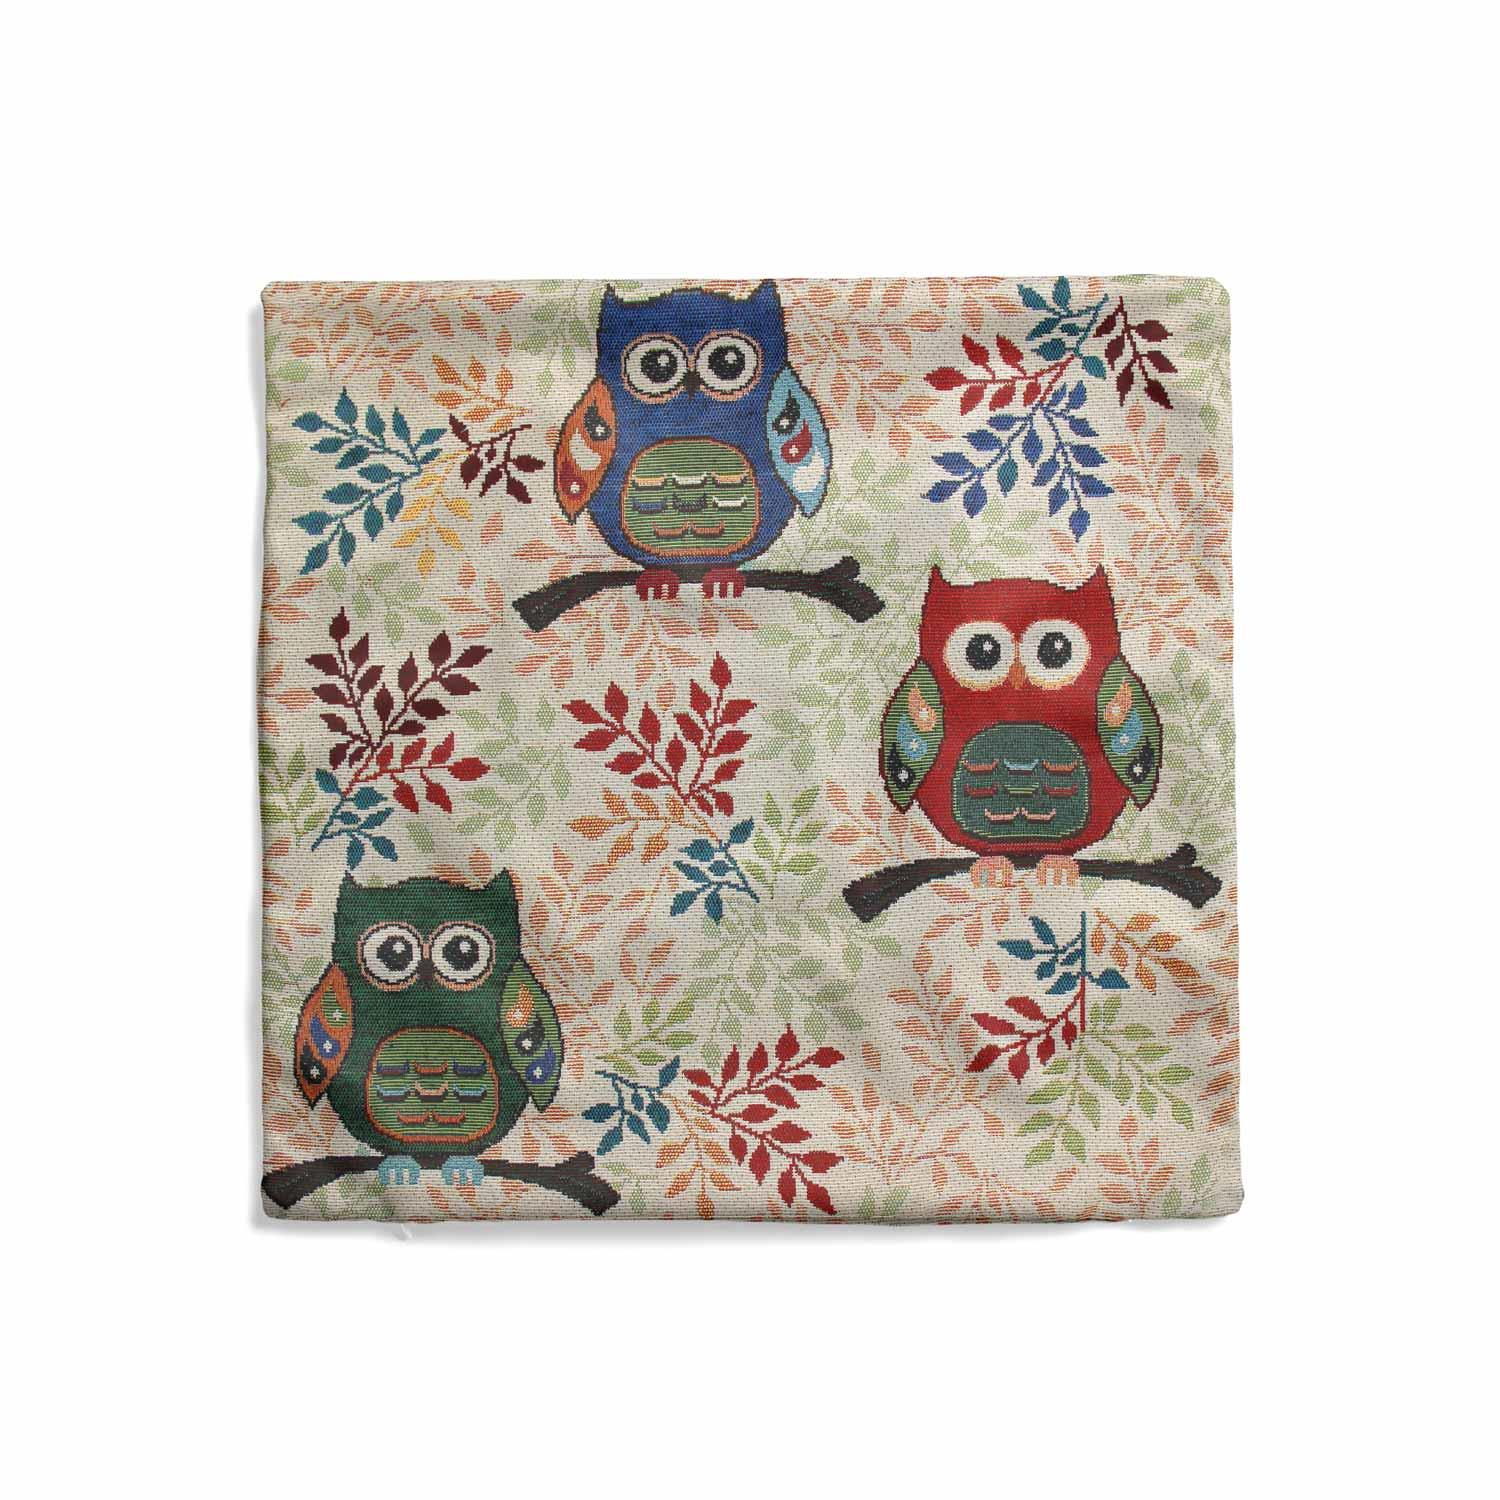 Tapestry-Cushion-Covers-Vintage-Pillow-Cover-Collection-18-034-45cm-Filled-Cushions thumbnail 205